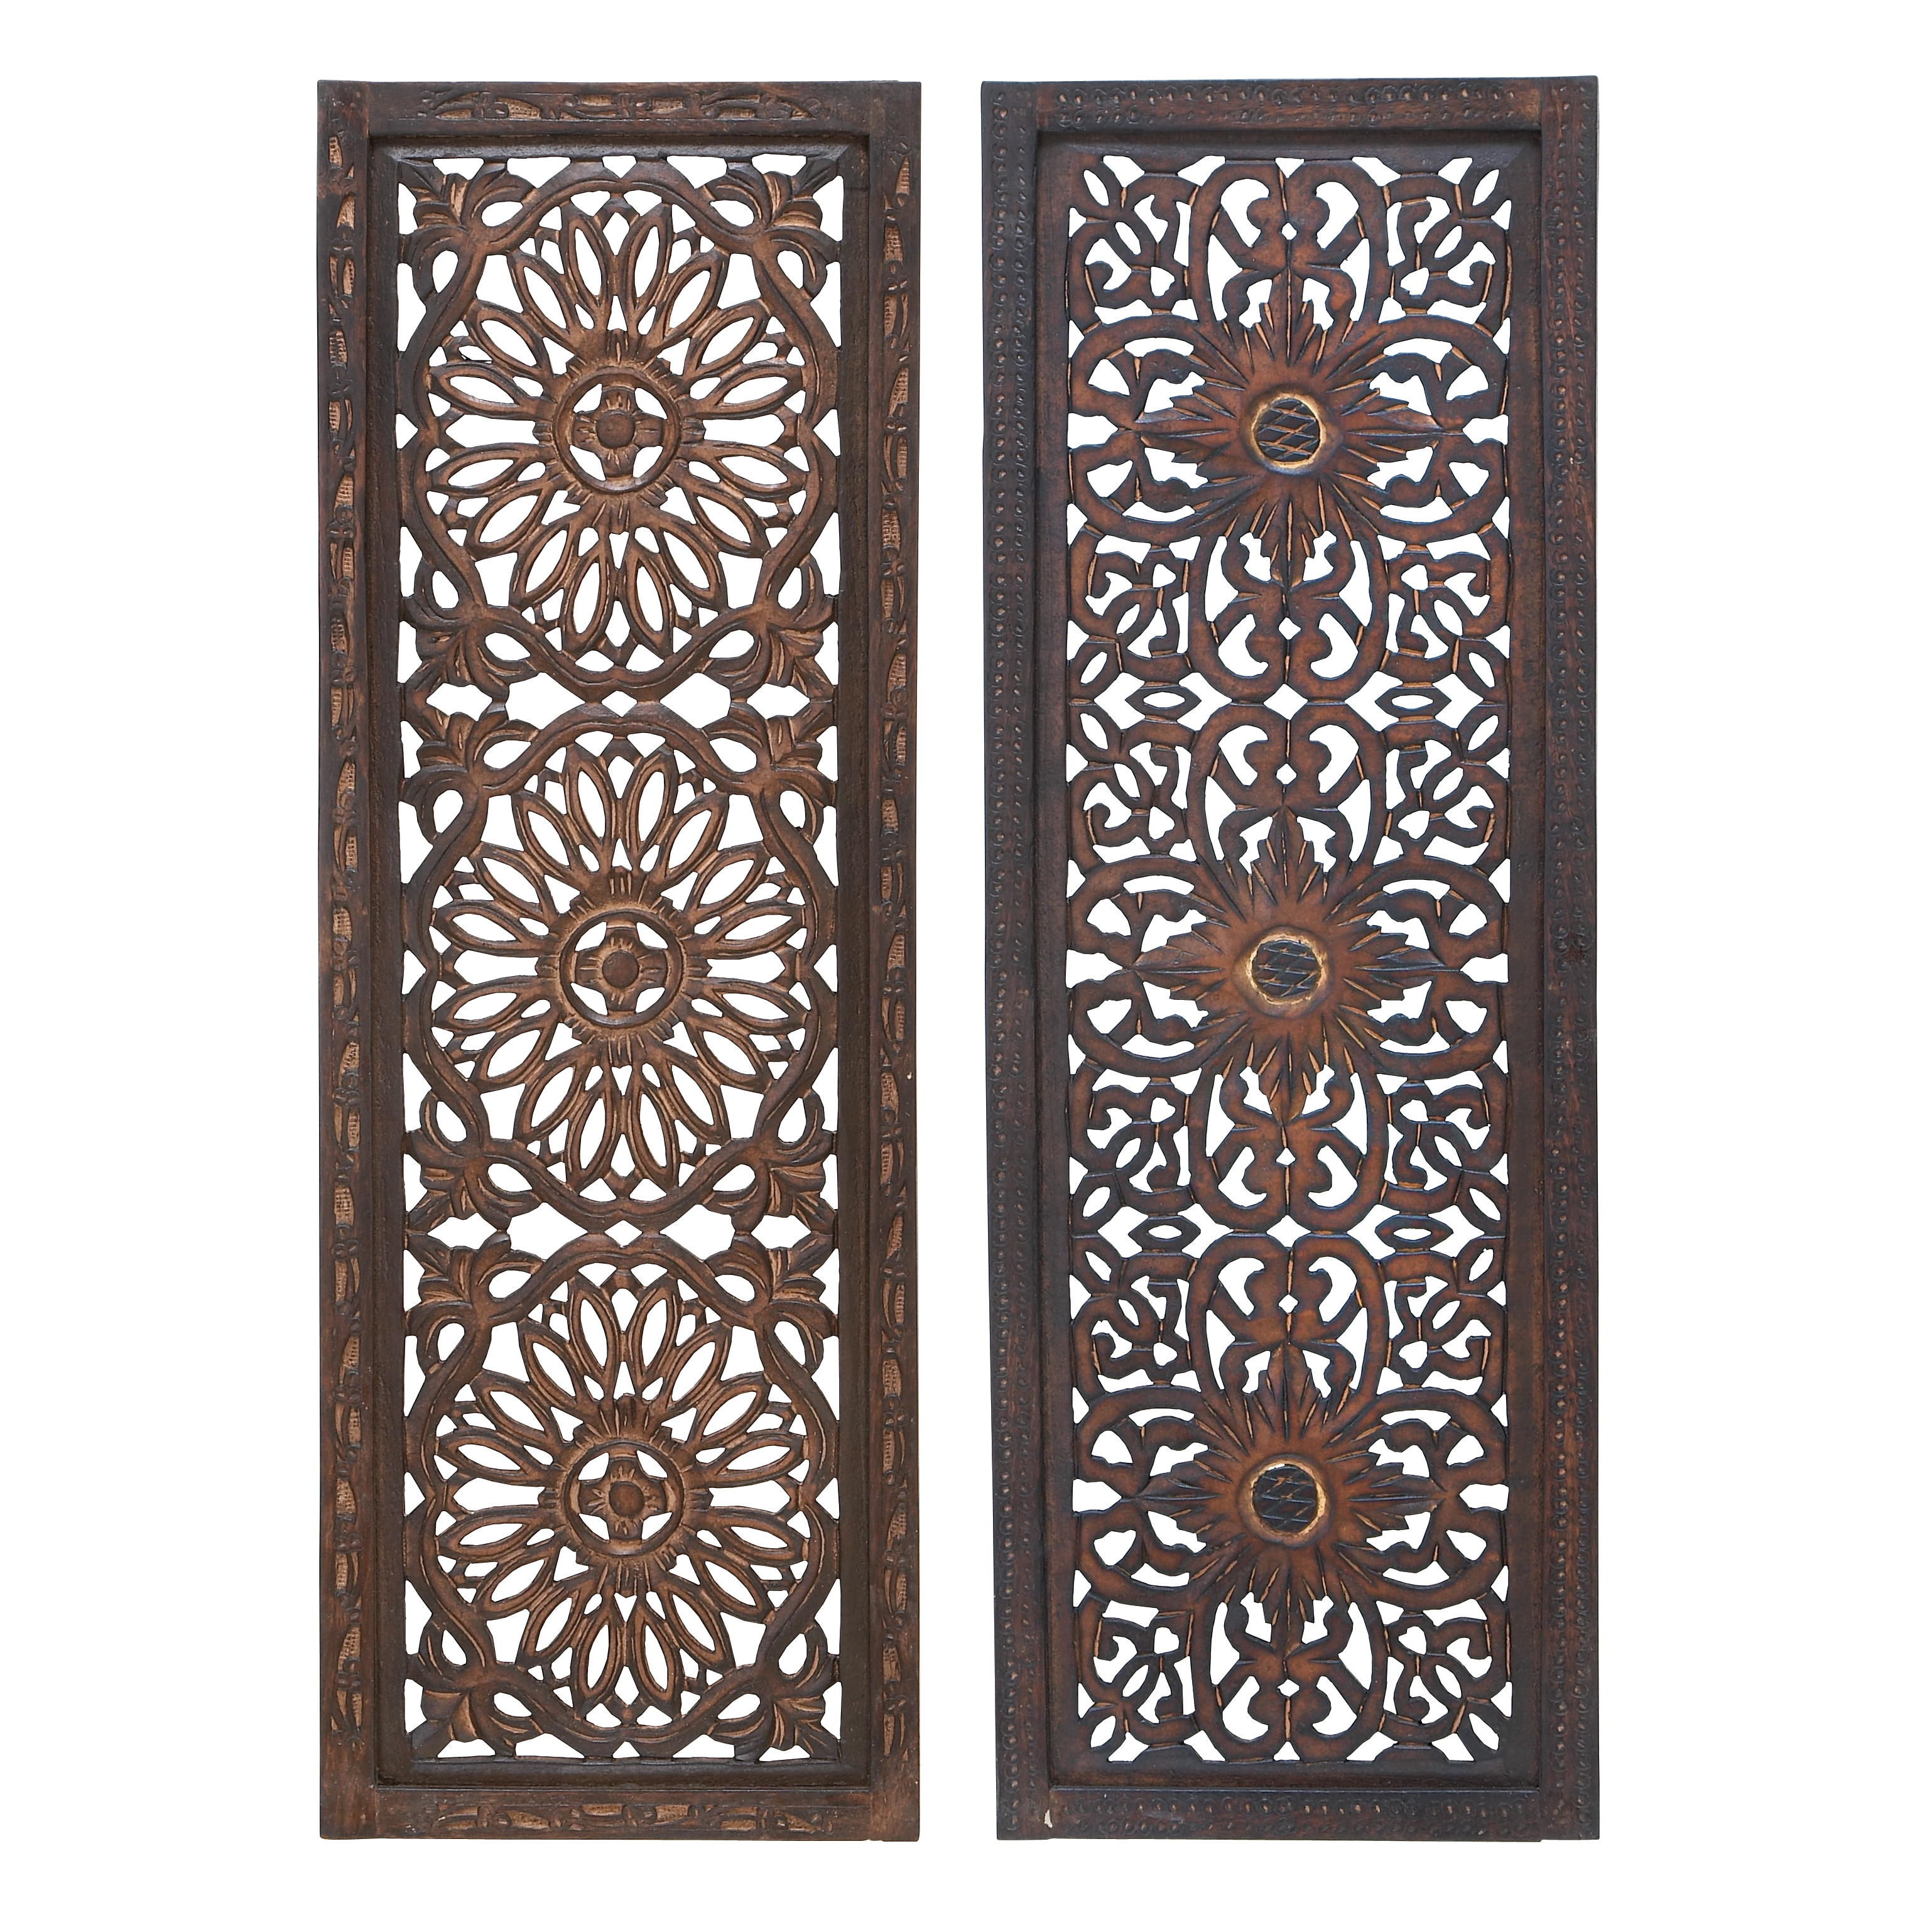 Accent Pieces For Home: 2-piece Elegant Wall Sculpture Wood Wall Panel